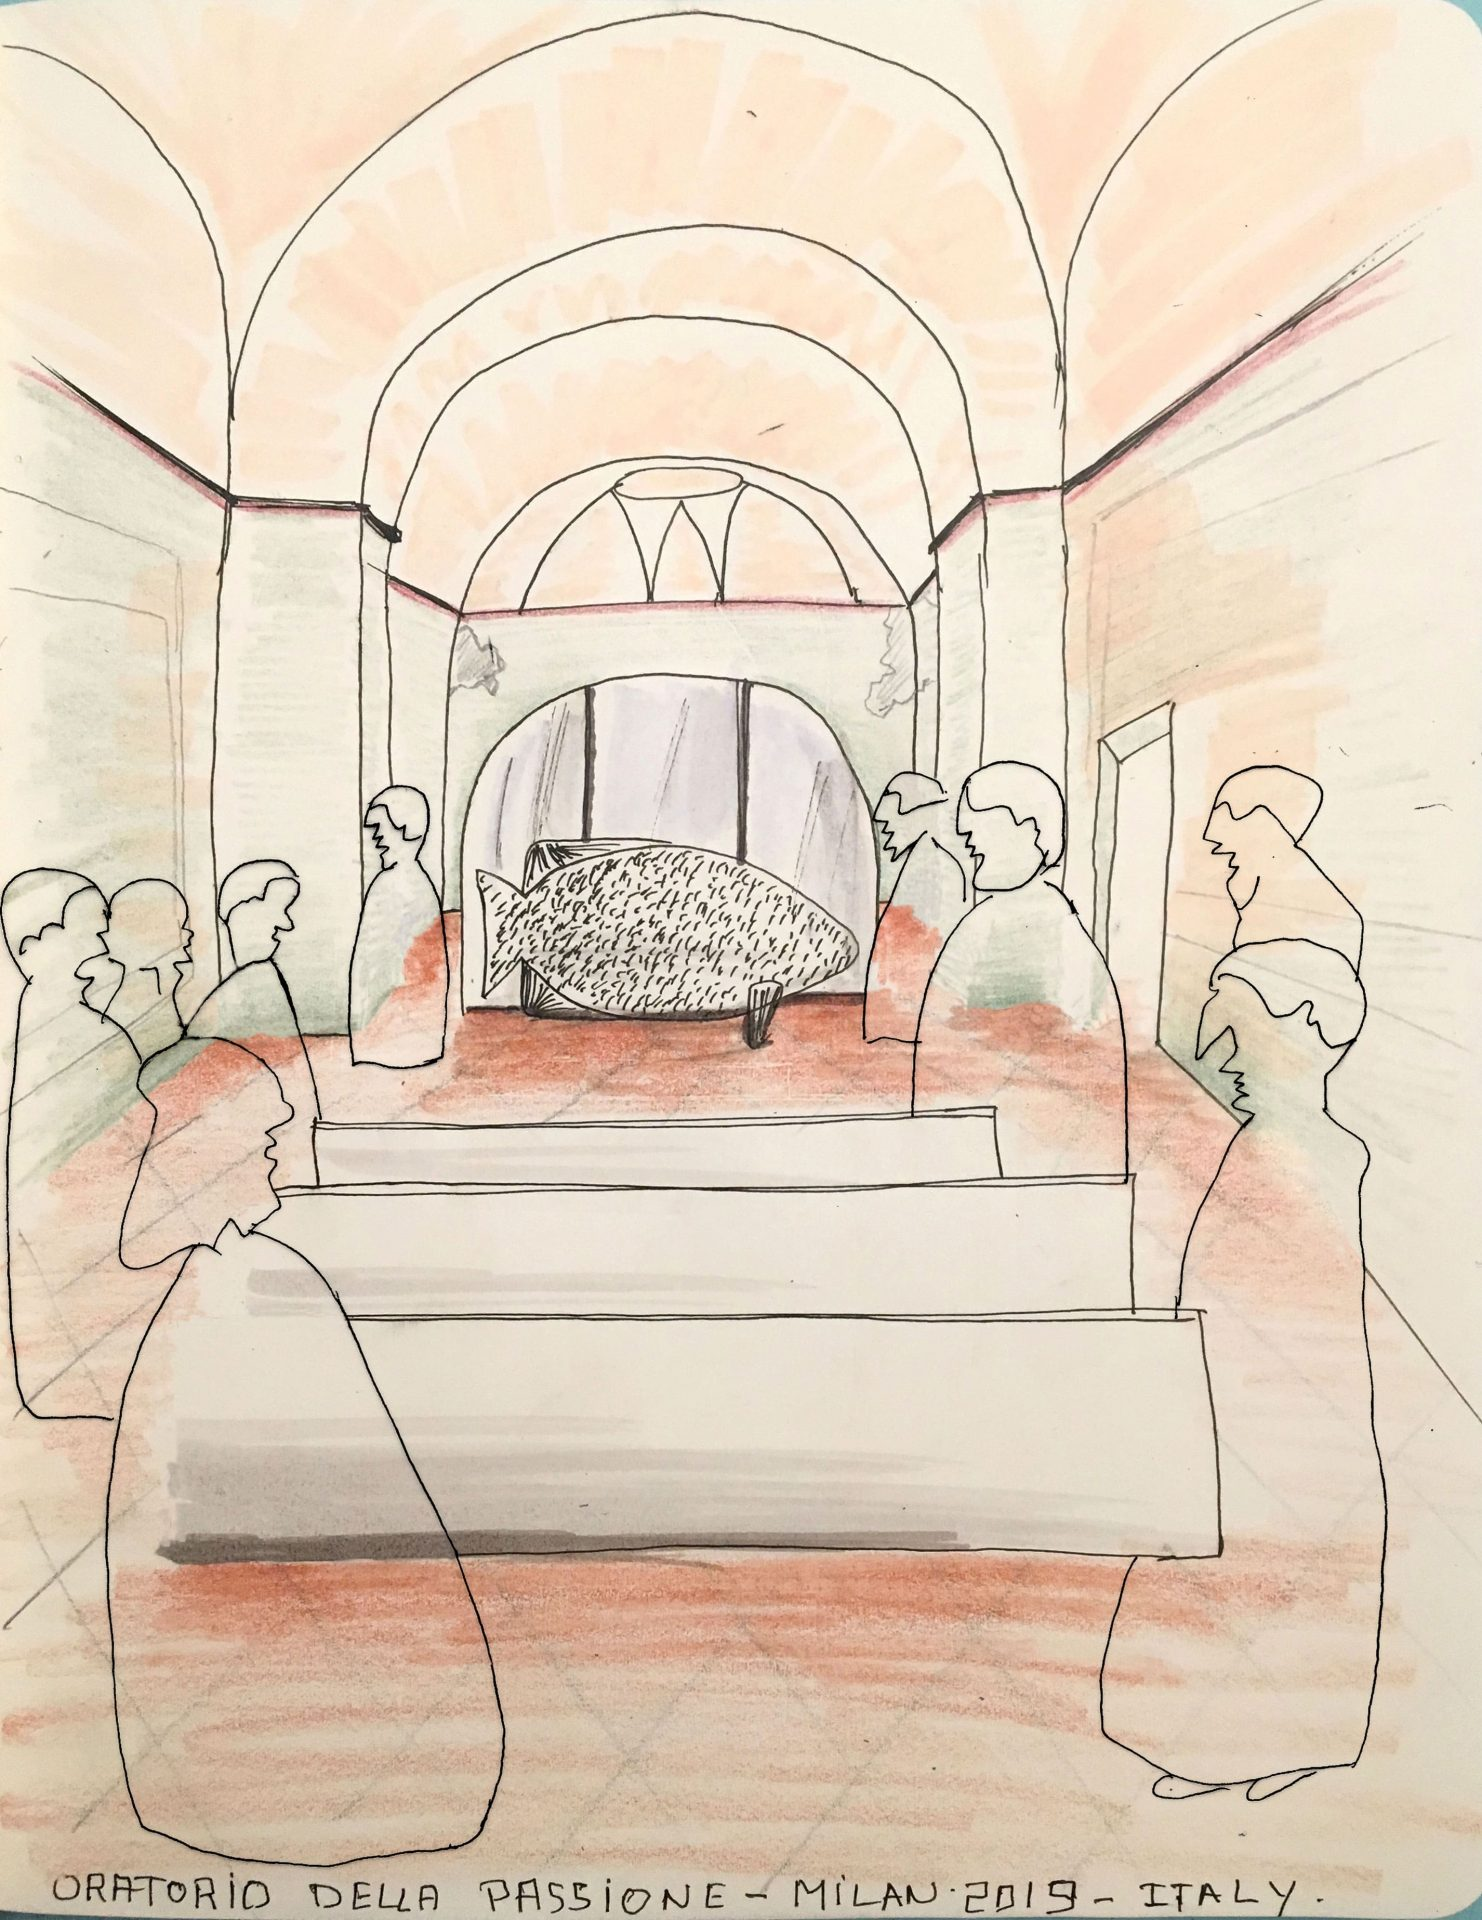 a drawing with outlines of a design plan inside a church